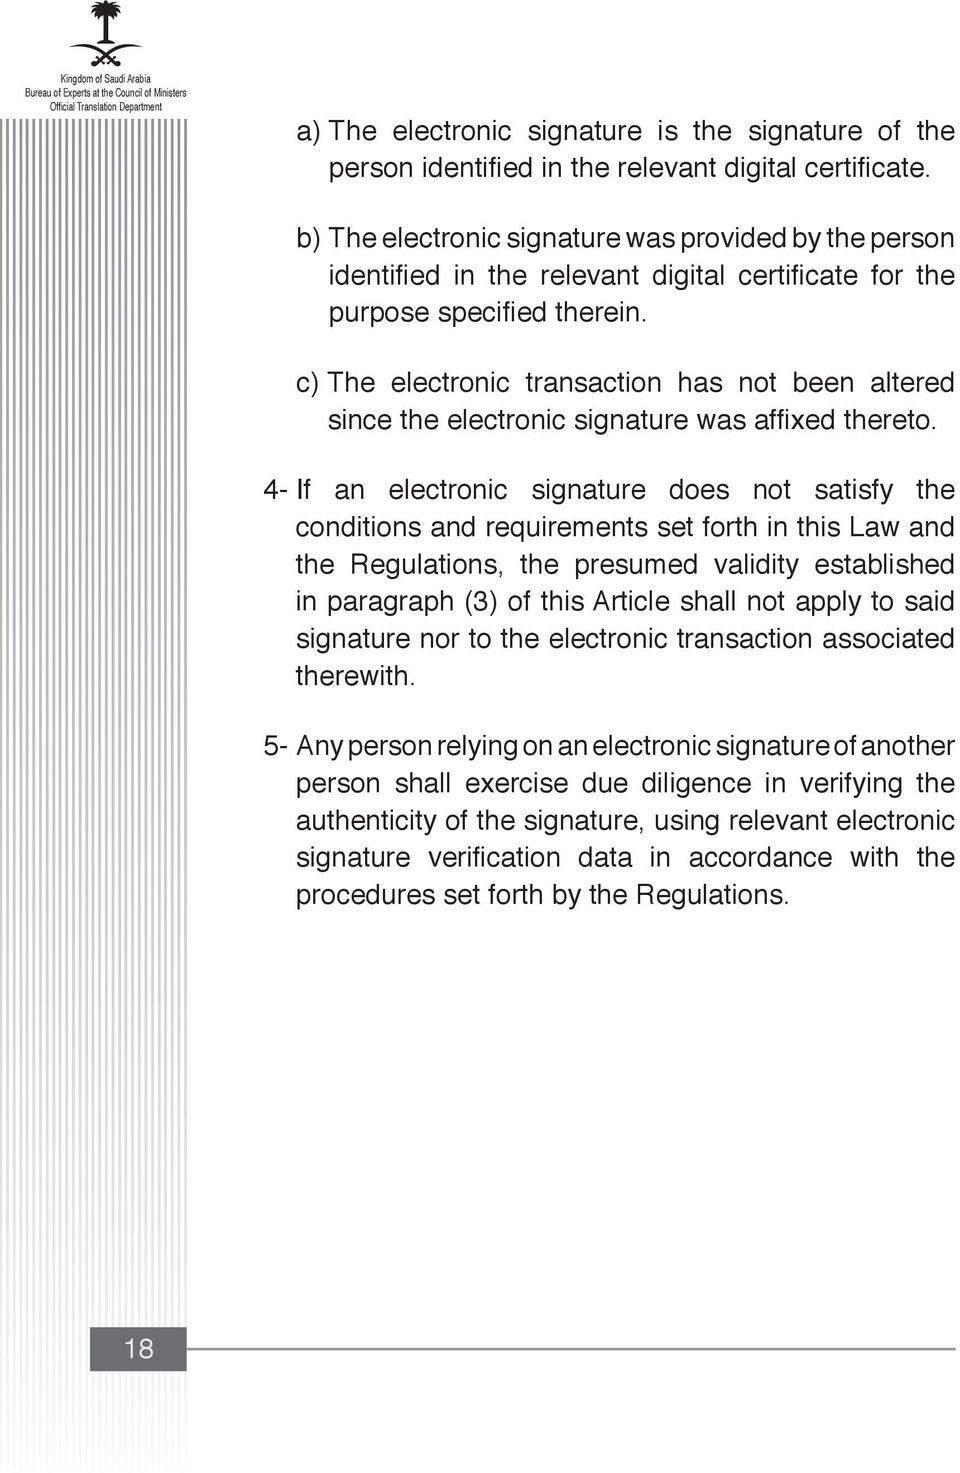 c) The electronic transaction has not been altered since the electronic signature was affixed thereto.